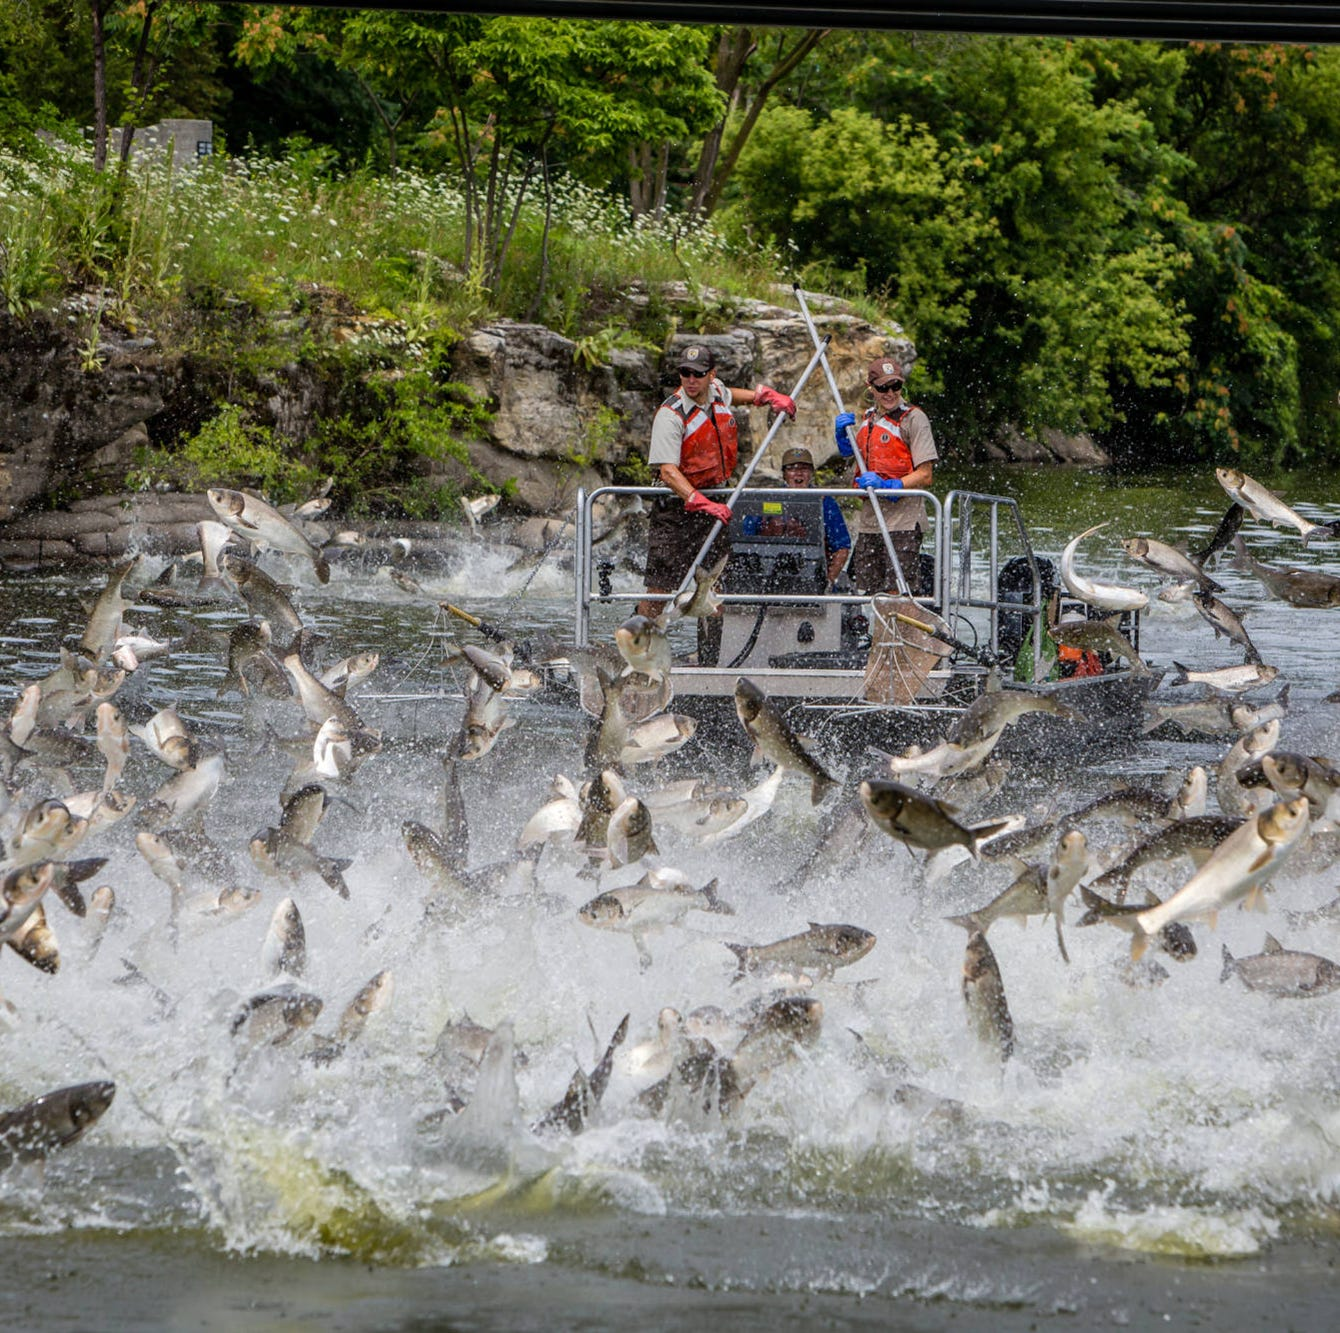 Creepy fish. Wild hogs. Obnoxious birds. What has their invasion done to Mississippi?